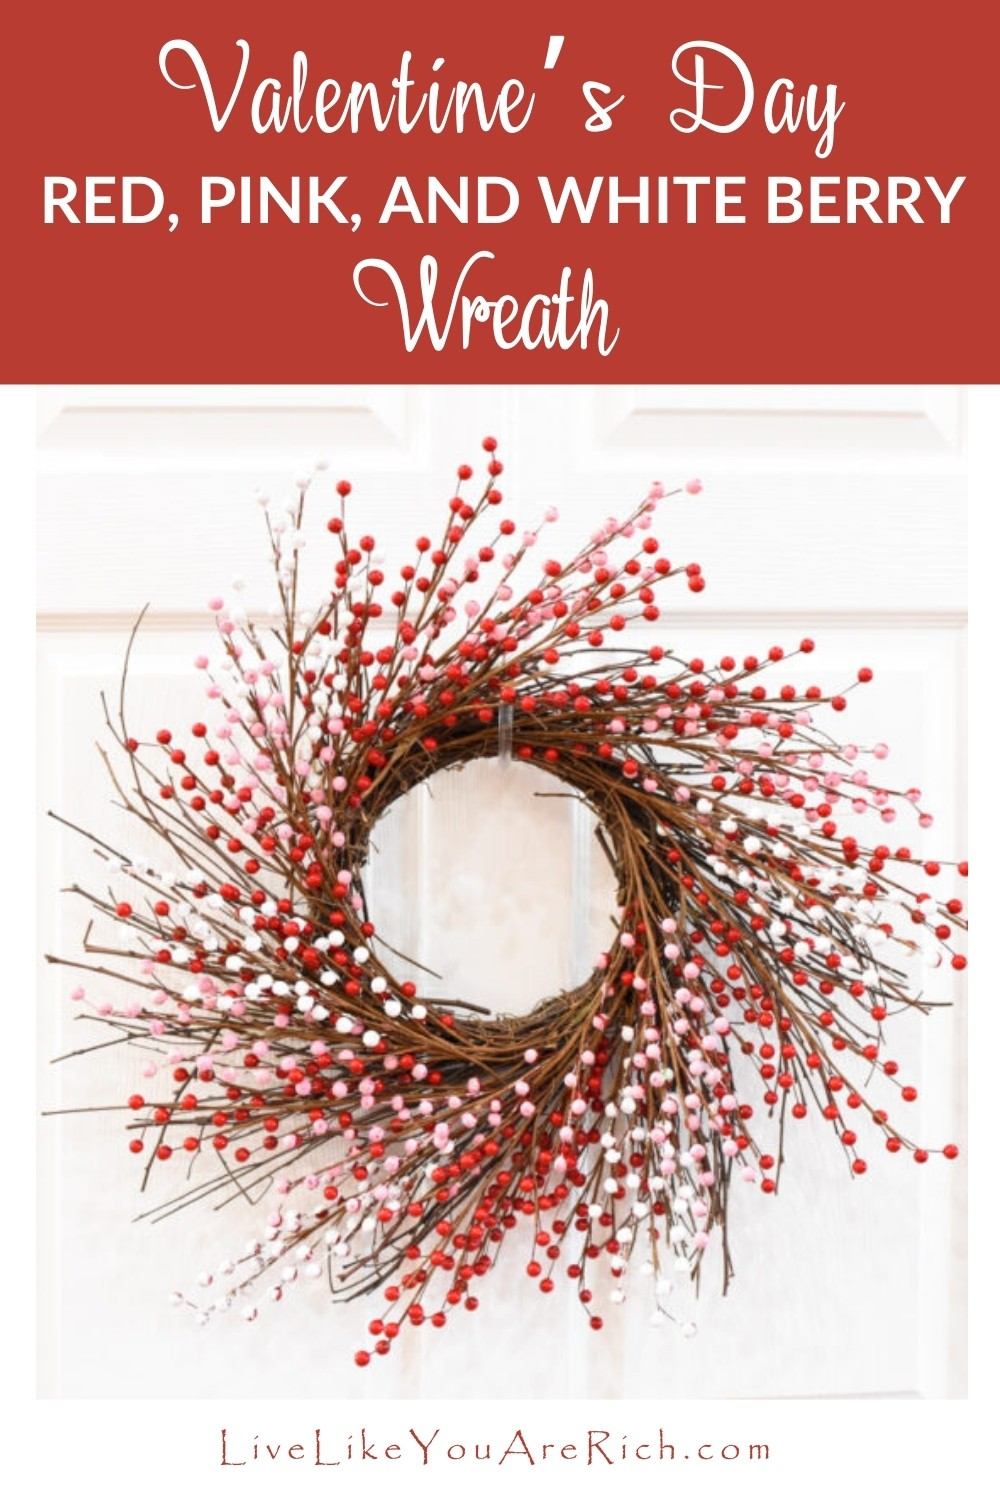 This Valentine's Day Red, Pink, and White Berry Wreath is one of my favorite wreaths I've ever made. I love the natural yet feminine vibe. I love its shape and simplicity. Sometimes Valentine's Day decor is a little overly plastic and cheesy. I really like subtleness of this wreath.